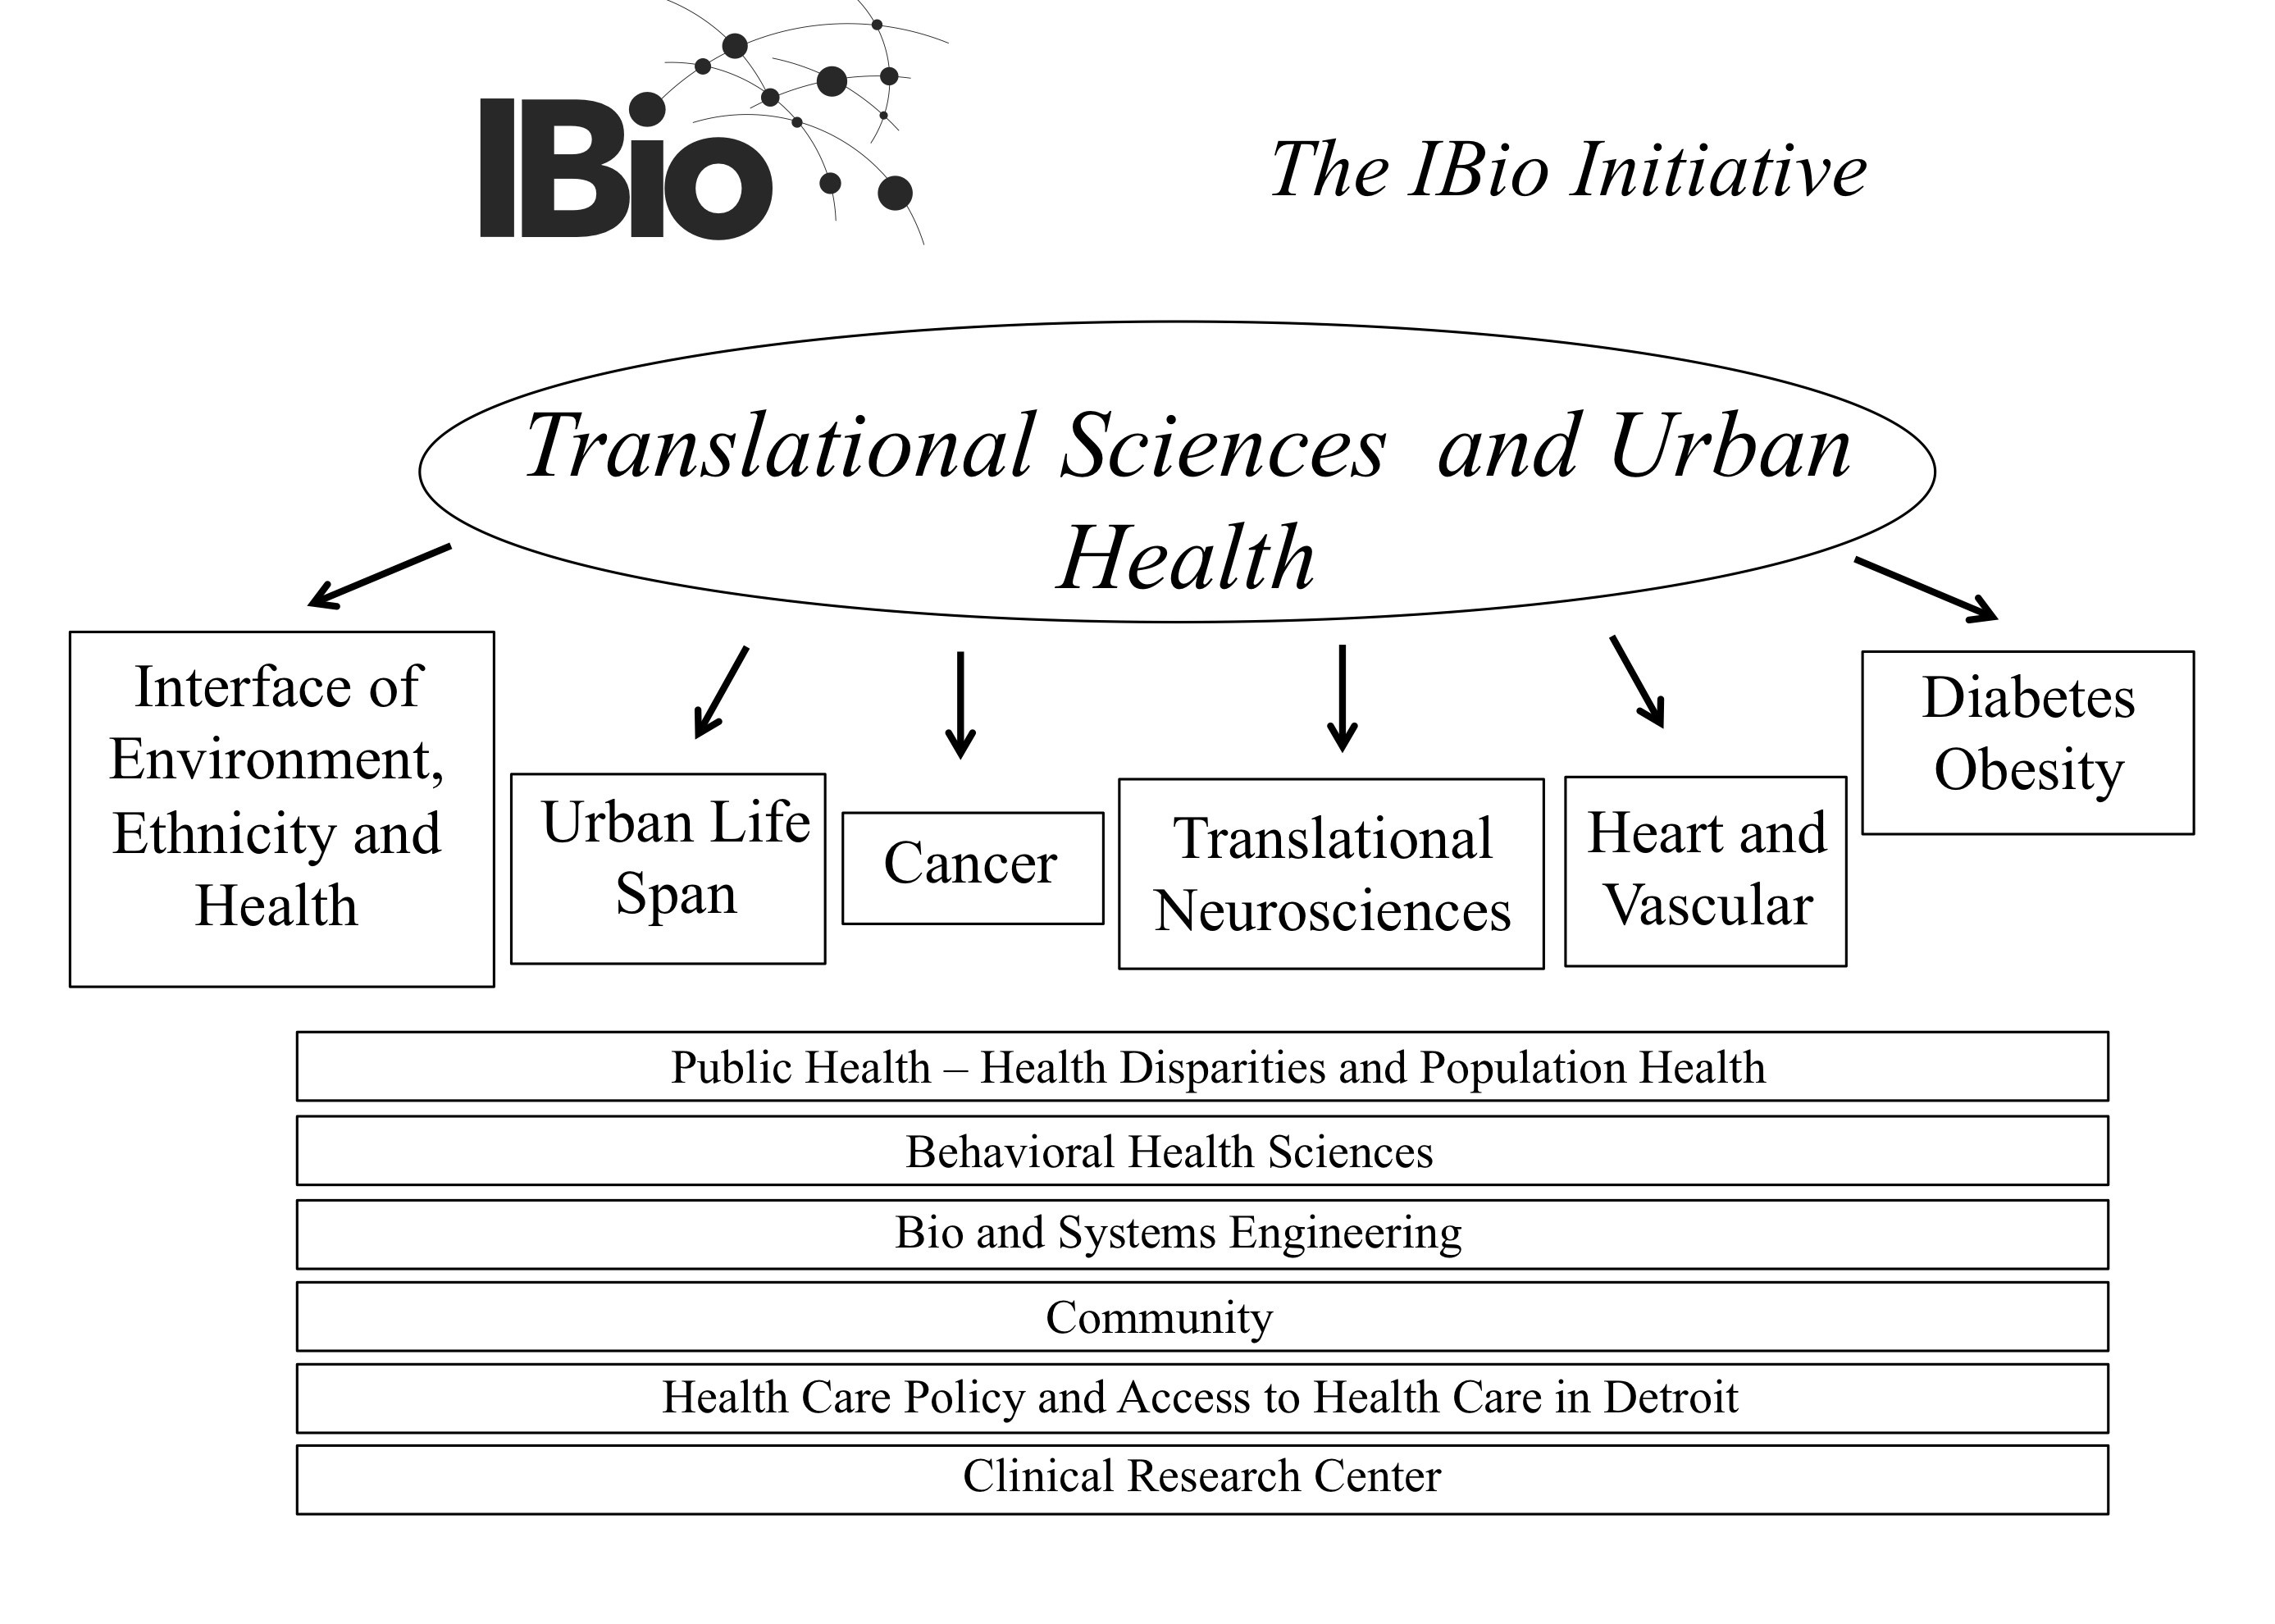 Translational Sciences and Urban Health Schematic